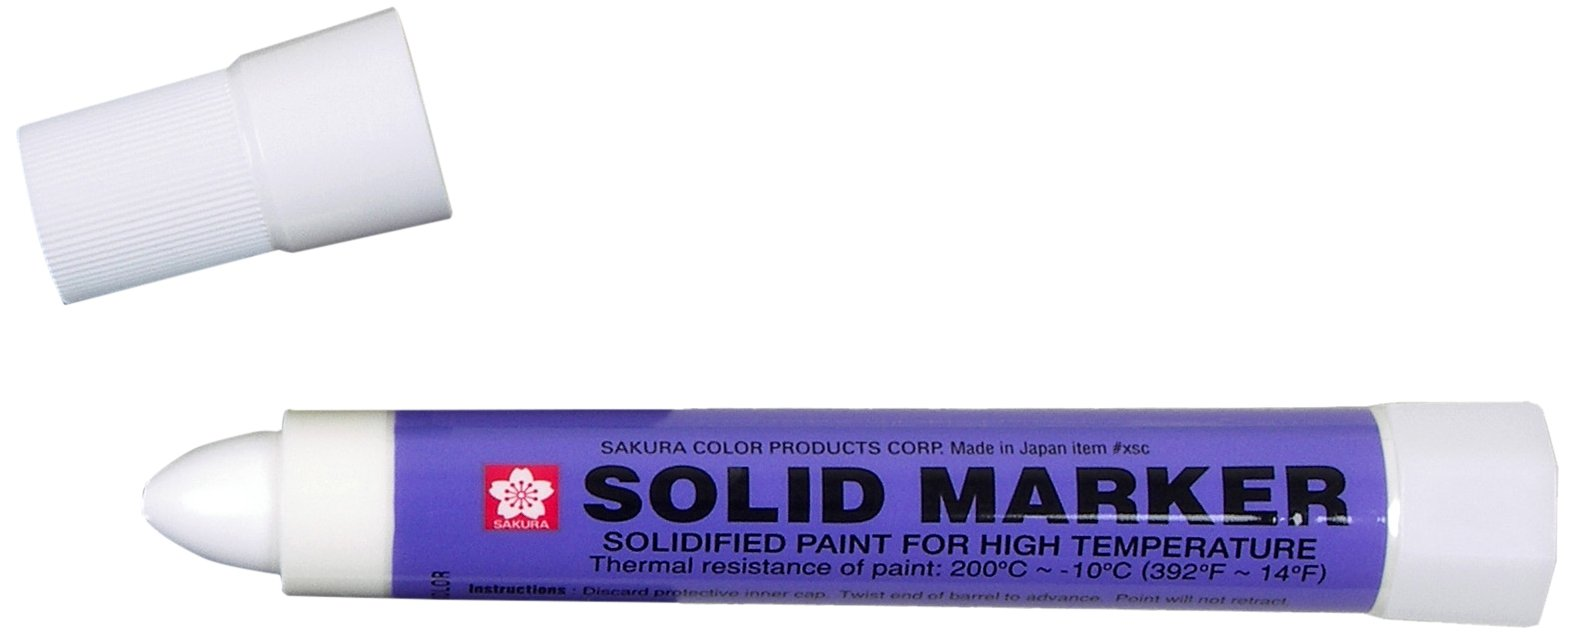 Sakura Solidified Paint Solid Marker, White (Box of 12) by SAKURA